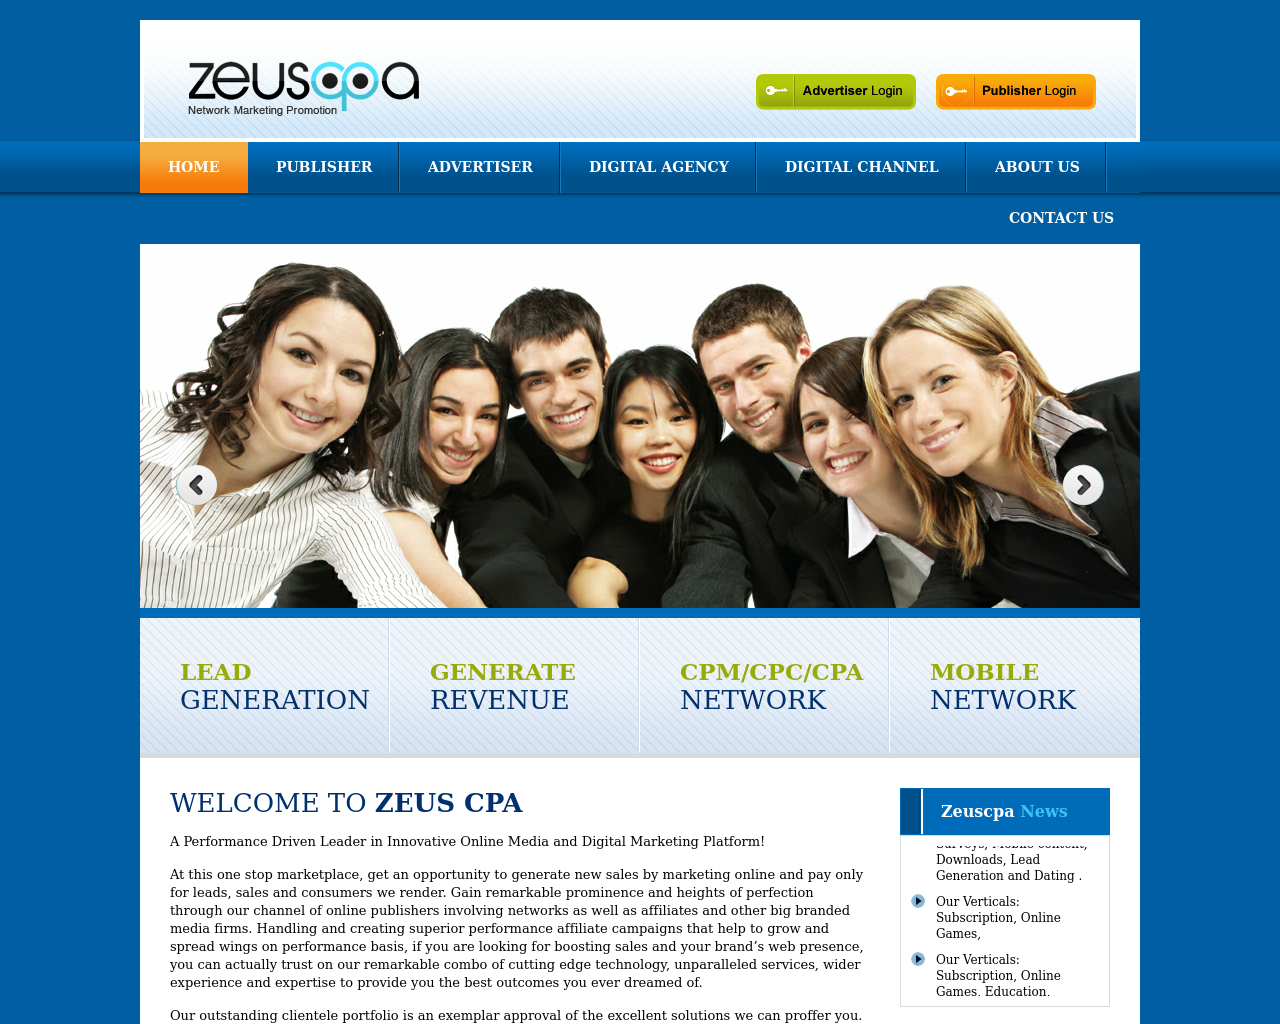 ZeusCPA-Advertising-Reviews-Pricing